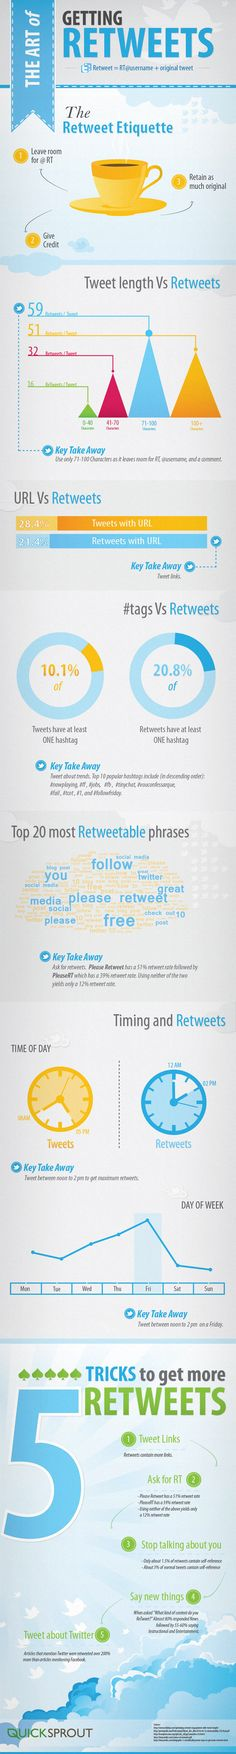 The Art of Getting Retweets an Infographic